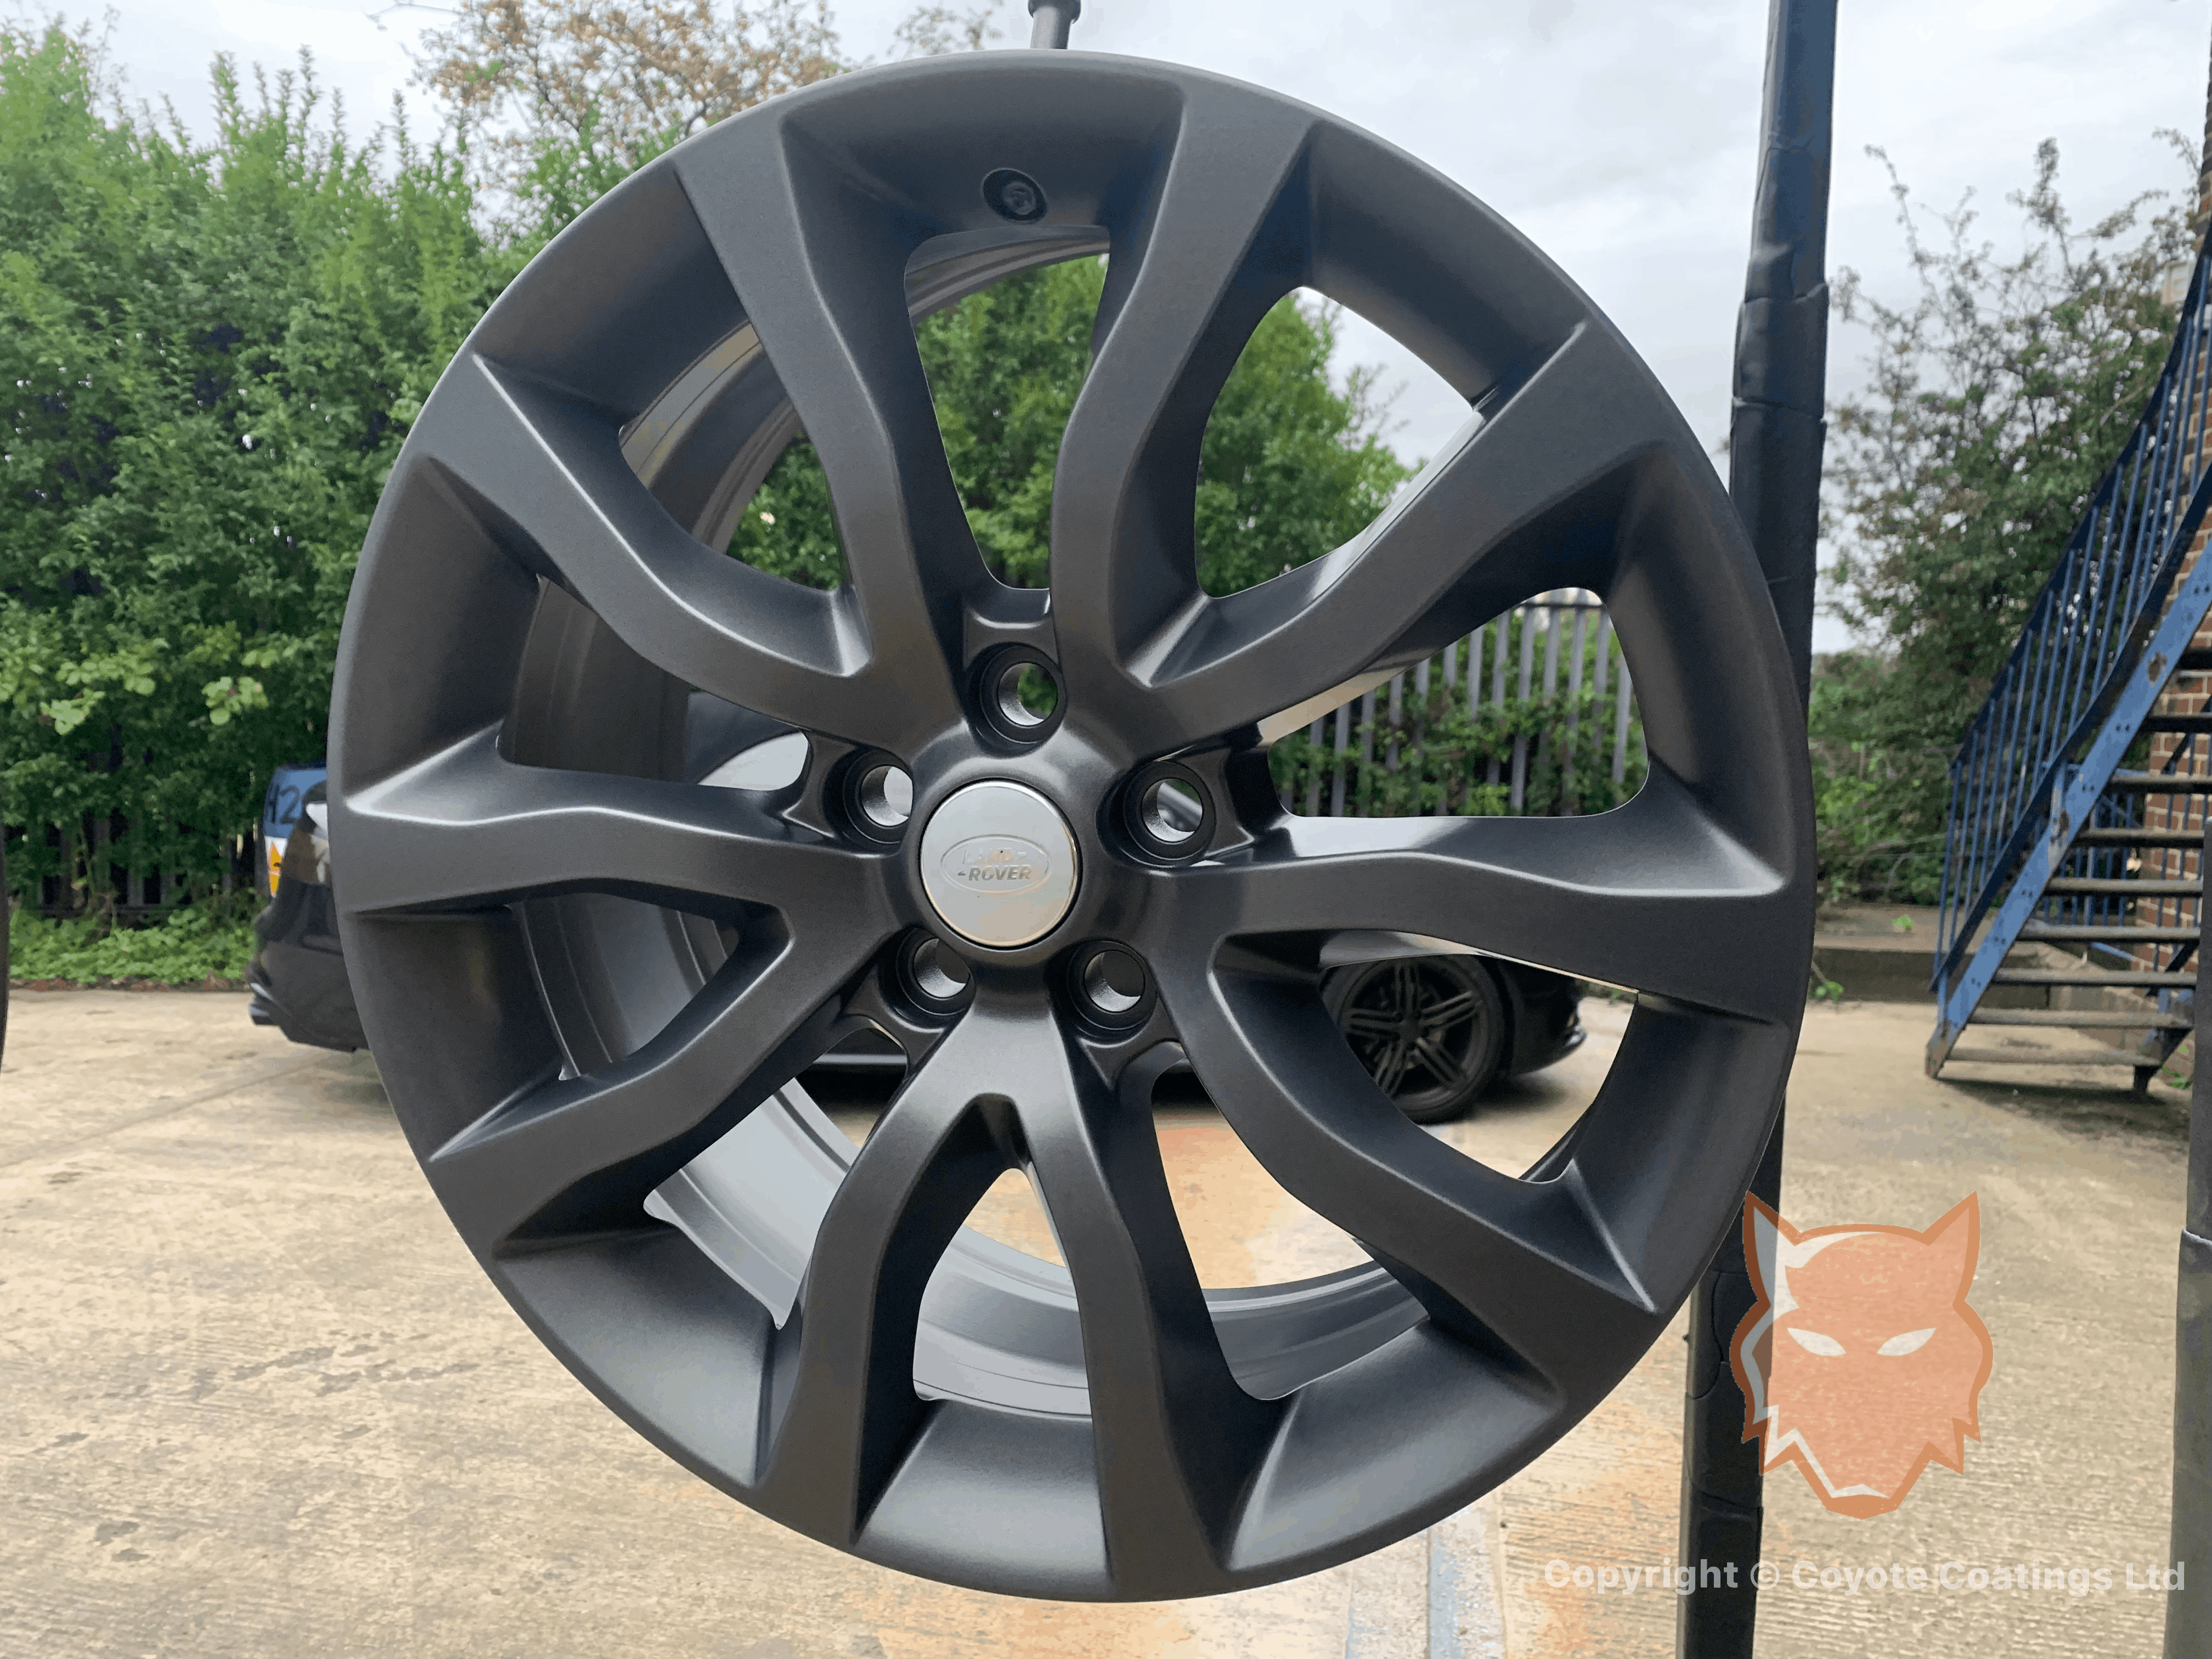 Powder Coated Matt Anthracite